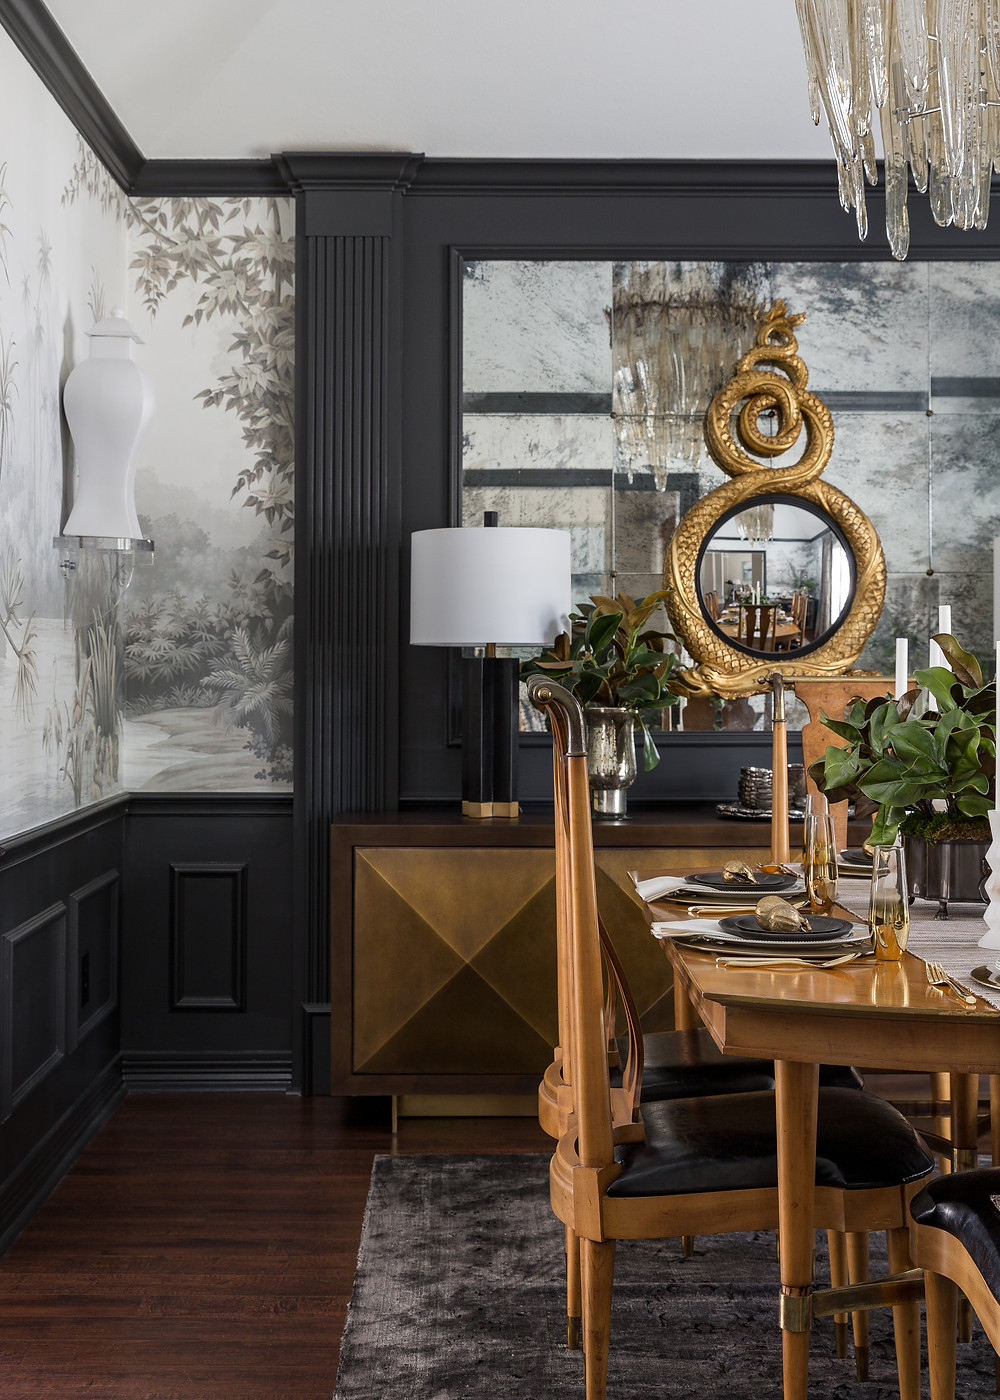 Dining Room With Mural Wallpaper, Trim Painted In A Dark Gray Satin Finish, Vintage Mirrors With Rosettes, Dolphin Decorative Mirror Overlayed, Organic Glass Chandelier. Designed By Veronica Solomon. Photographed By Colleen Scott Photography